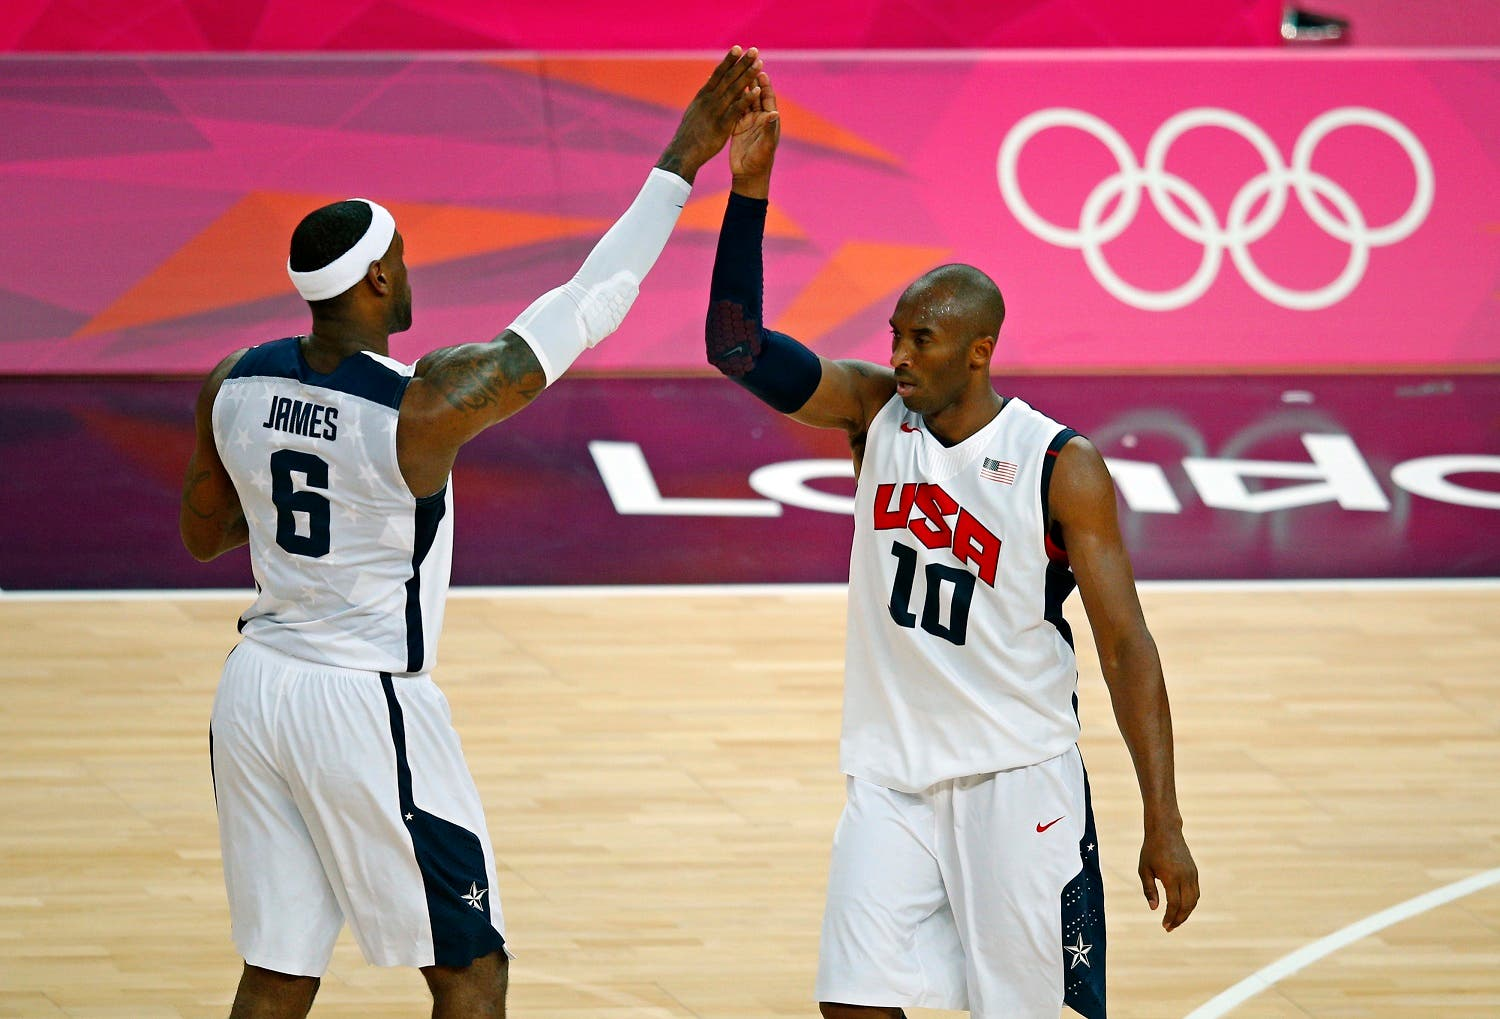 Lebron James (L) and Kobe Bryant both of the U.S. high-five each other during their game against Australia during their men's quarterfinal basketball match at the North Greenwich Arena in London during the London 2012 Olympic Games August 8, 2012. REUTERS/